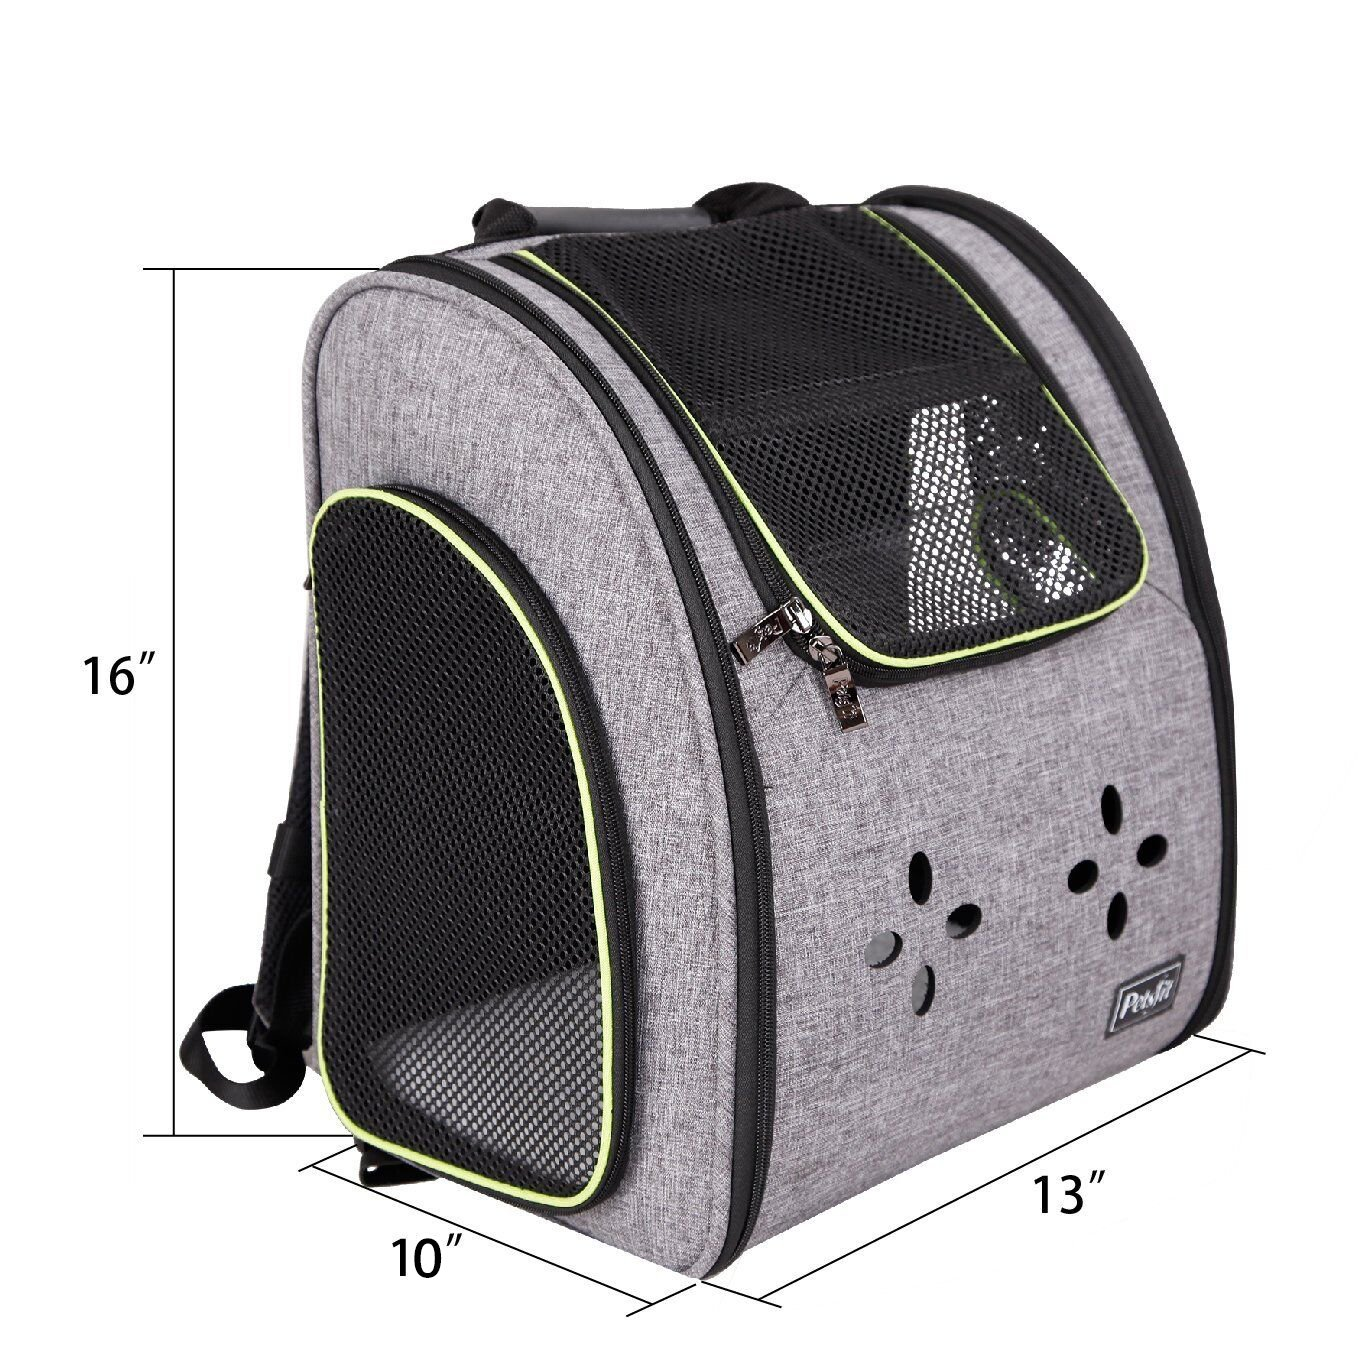 Petsfit Dogs Carriers Backpack for Cat/Dog/Guinea Pig/Bunny Durable and Comfortable Pet Bag by Petsfit (Image #2)